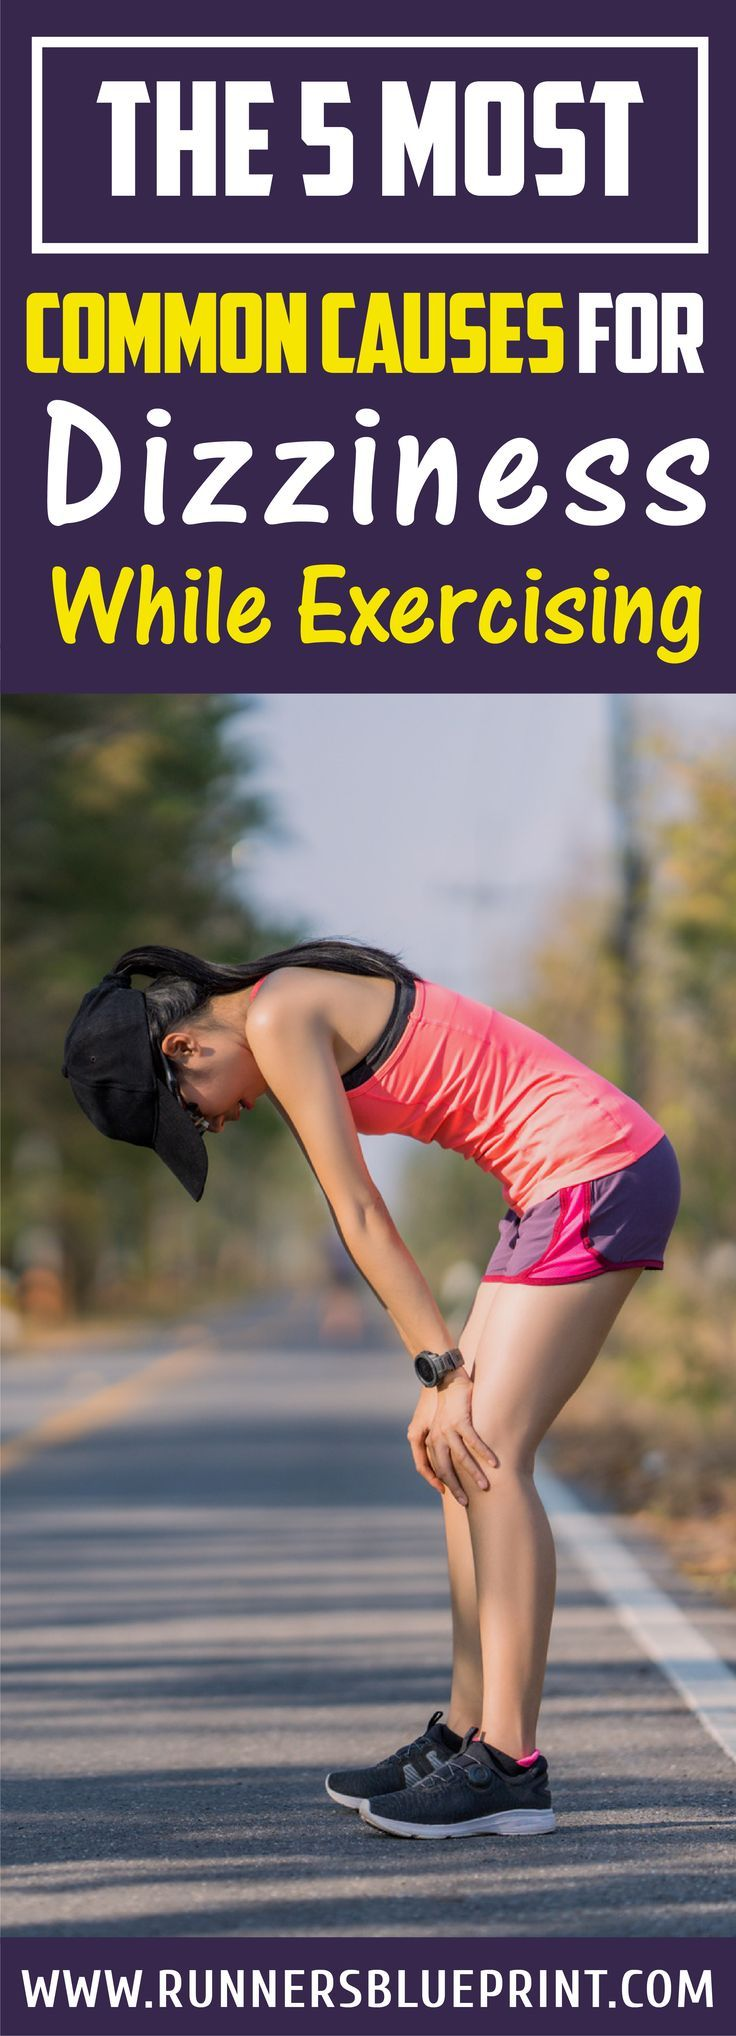 The 5 Most Common Causes For Dizziness While Running — Runner's Blueprint    Intense workout, Heavy sweating, Running